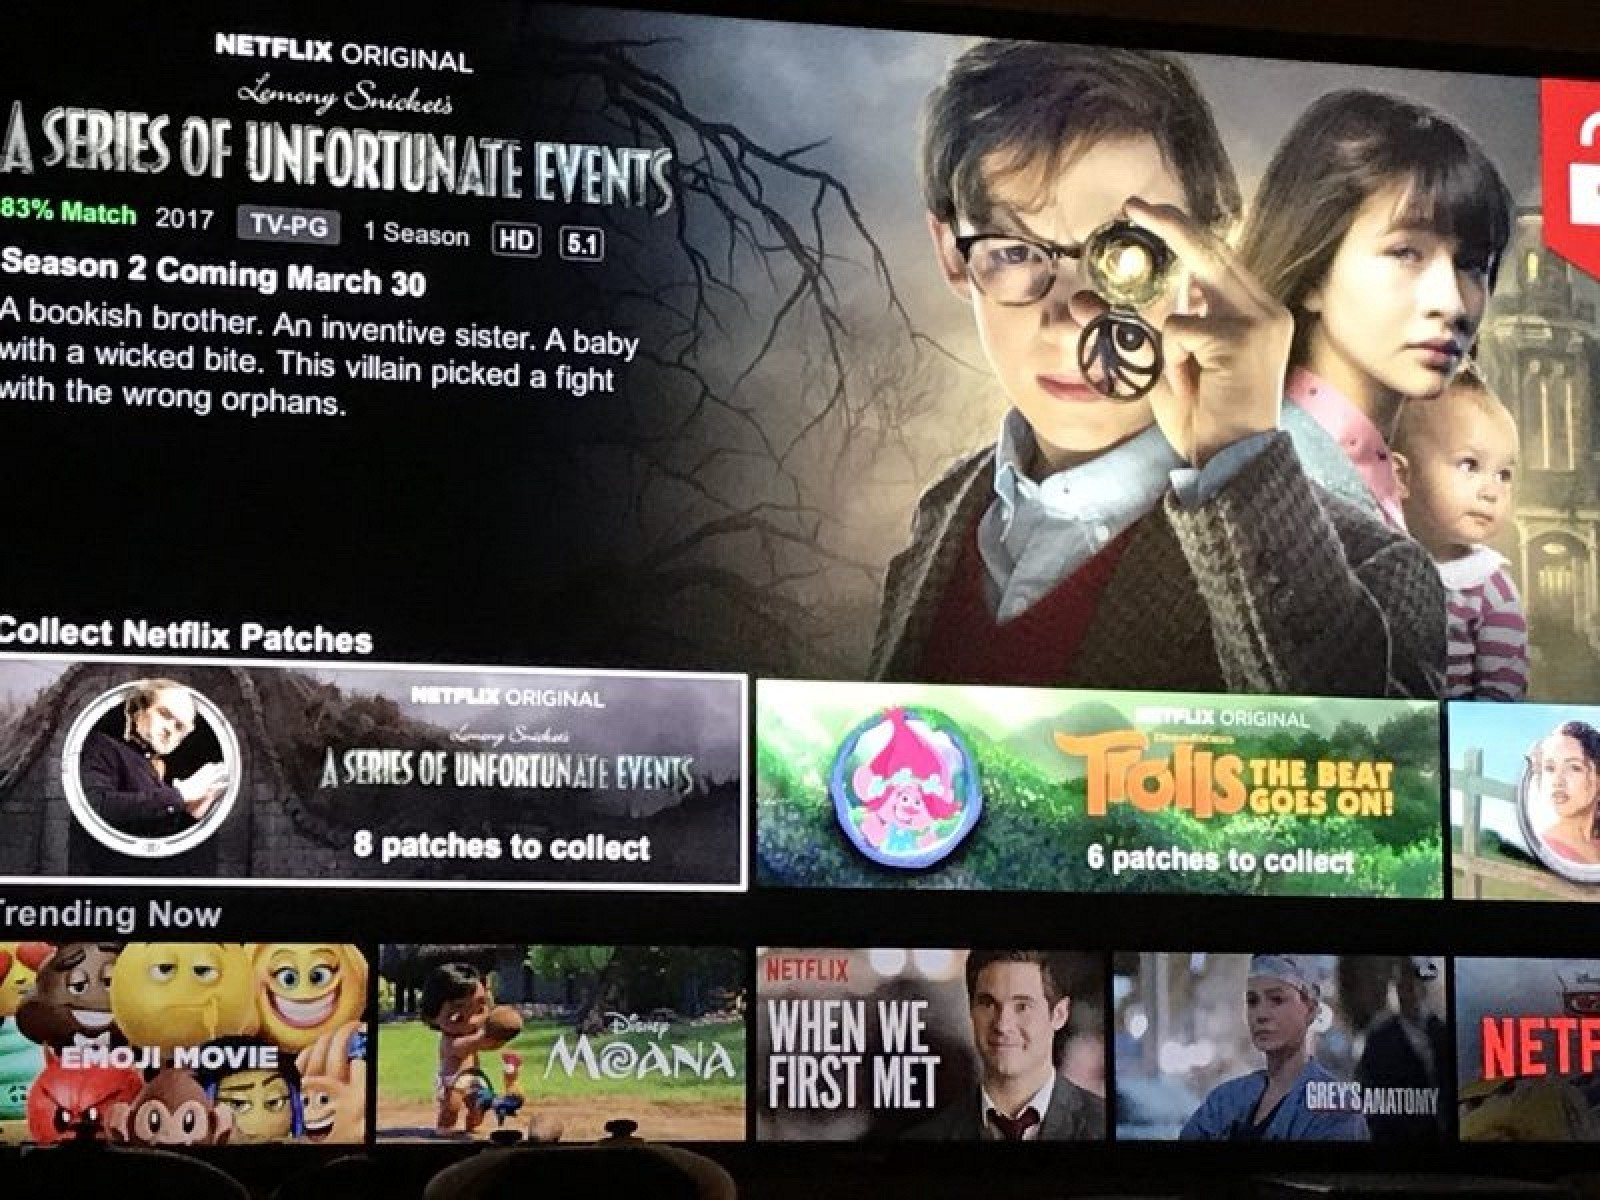 how to download netflic shows on mac